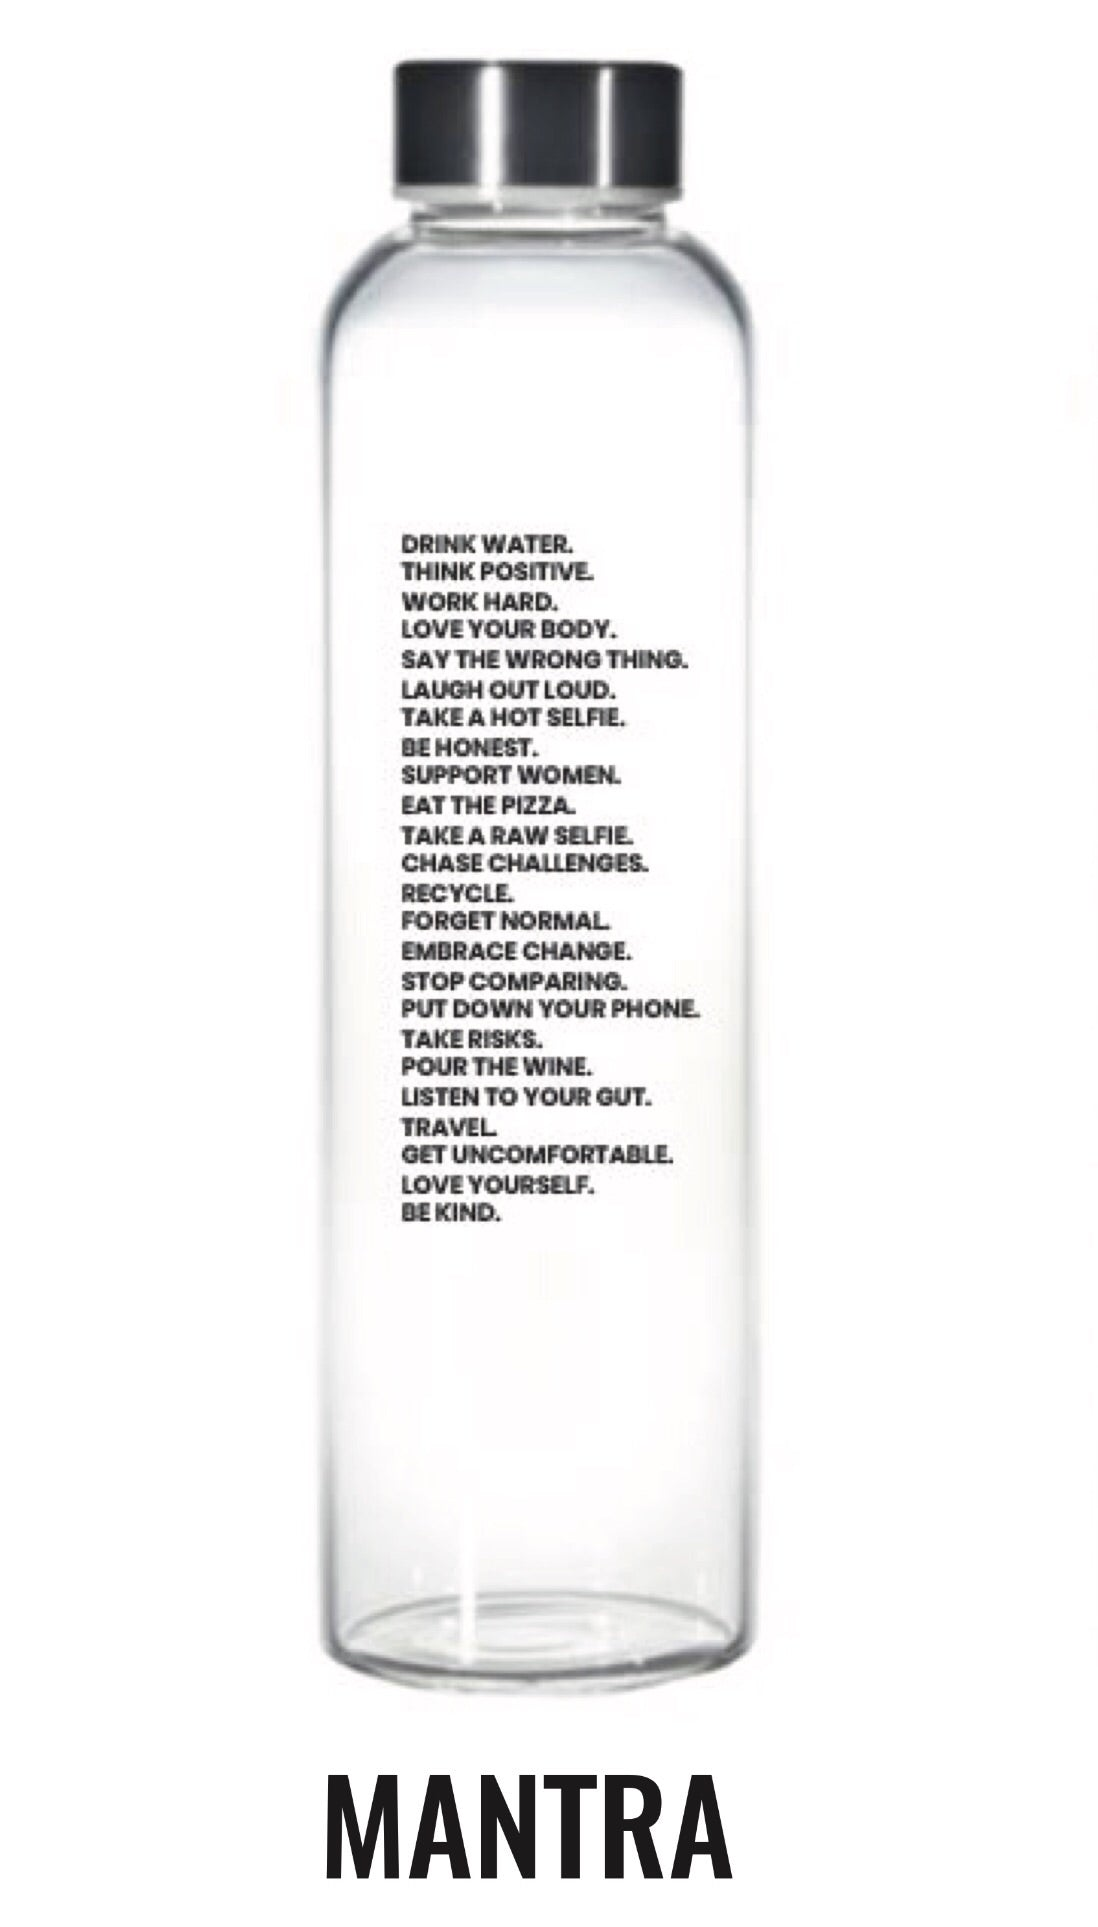 Mantra glass water bottle